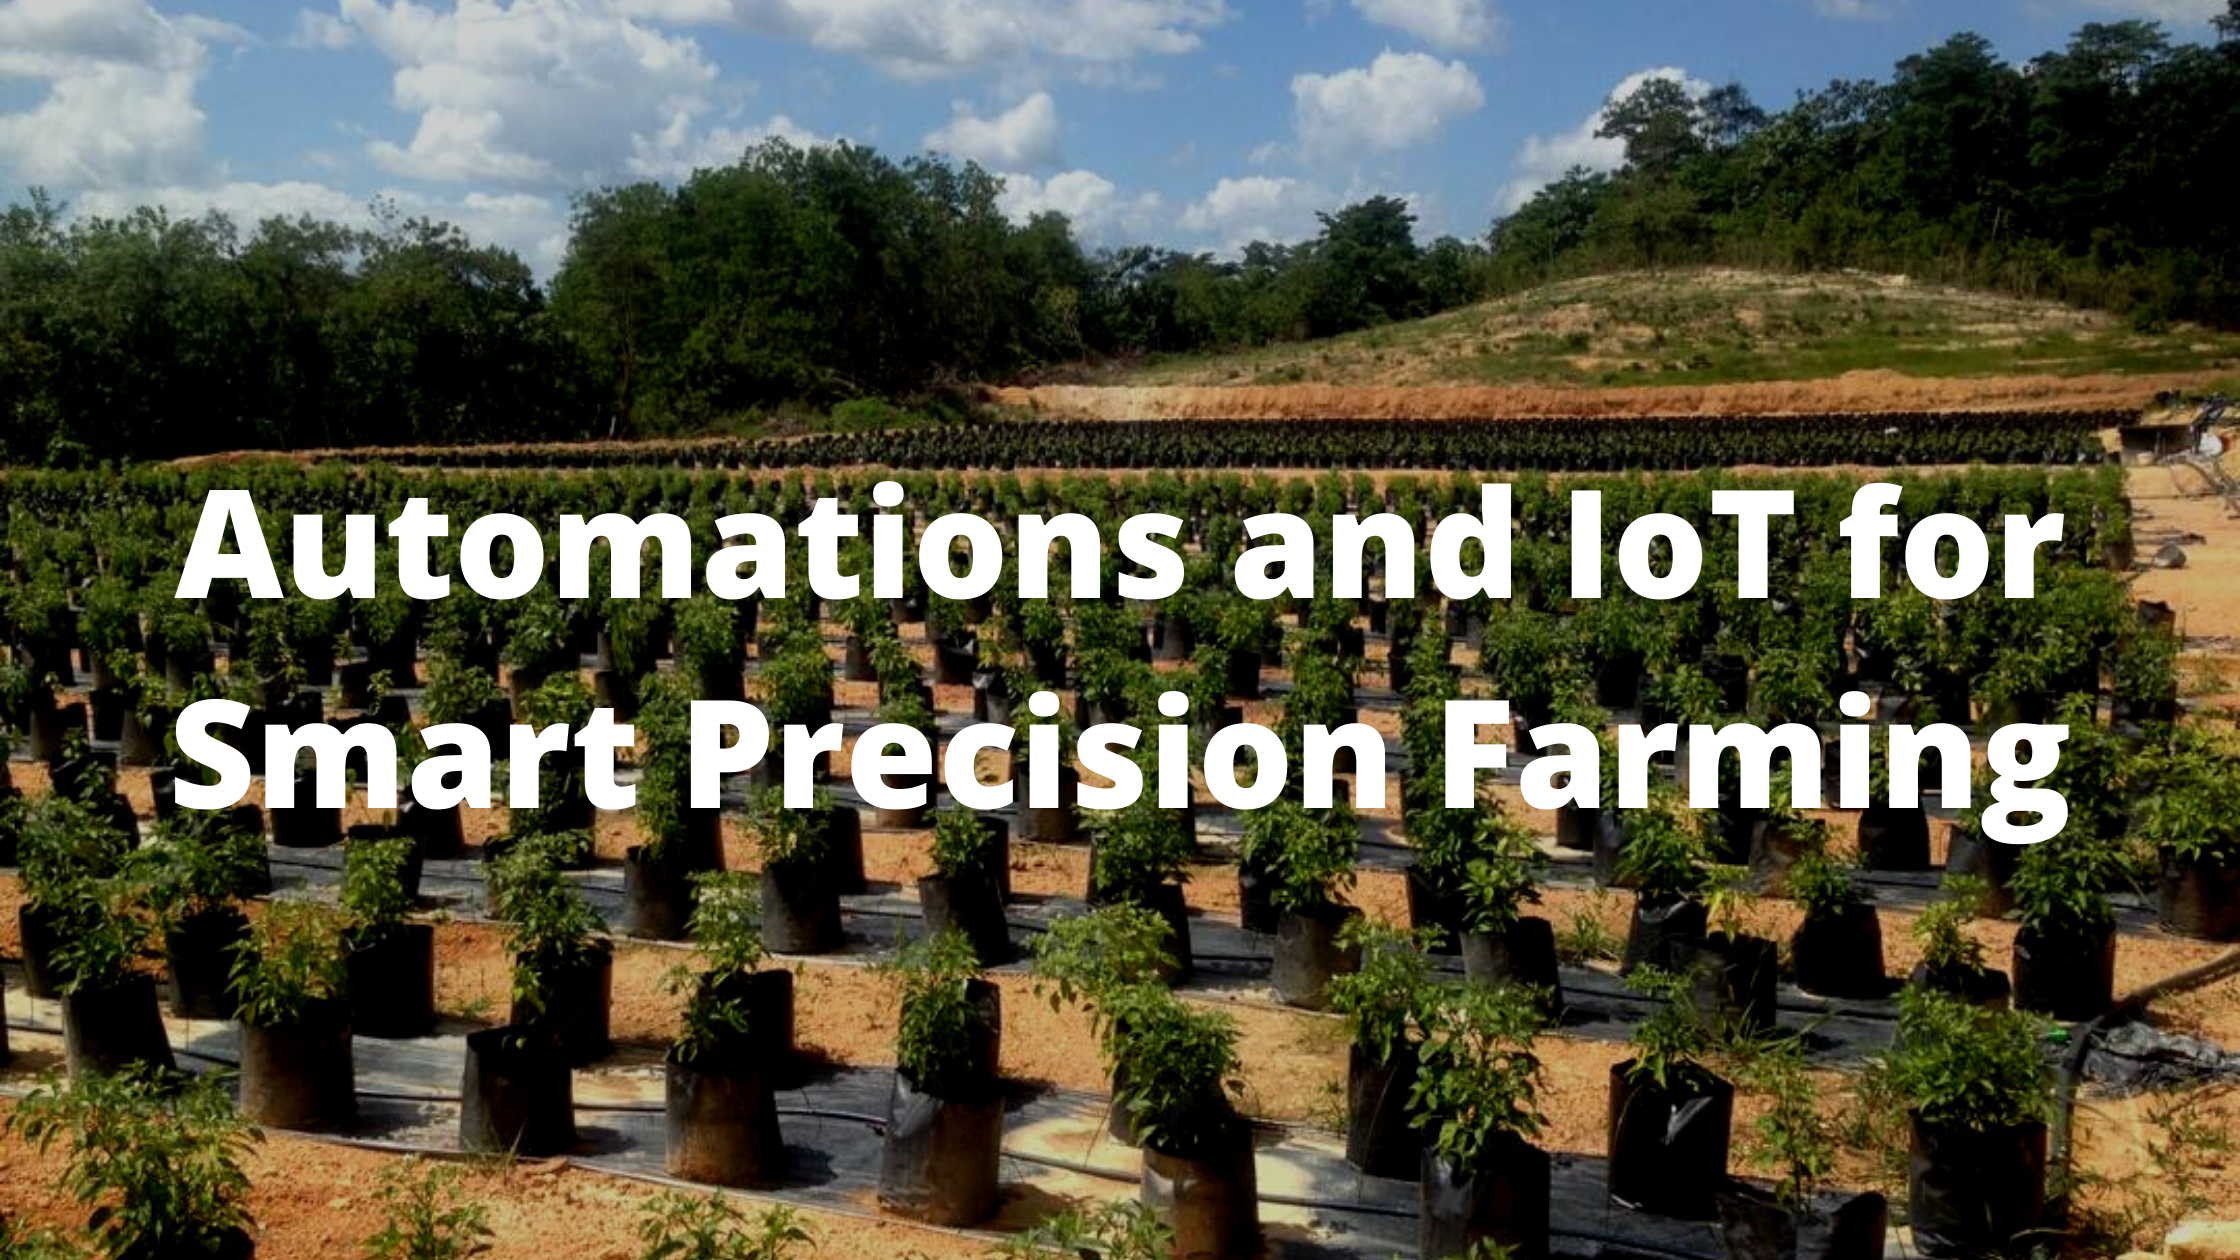 Automations-and-IoT-for-Smart-Precision-Farming-1